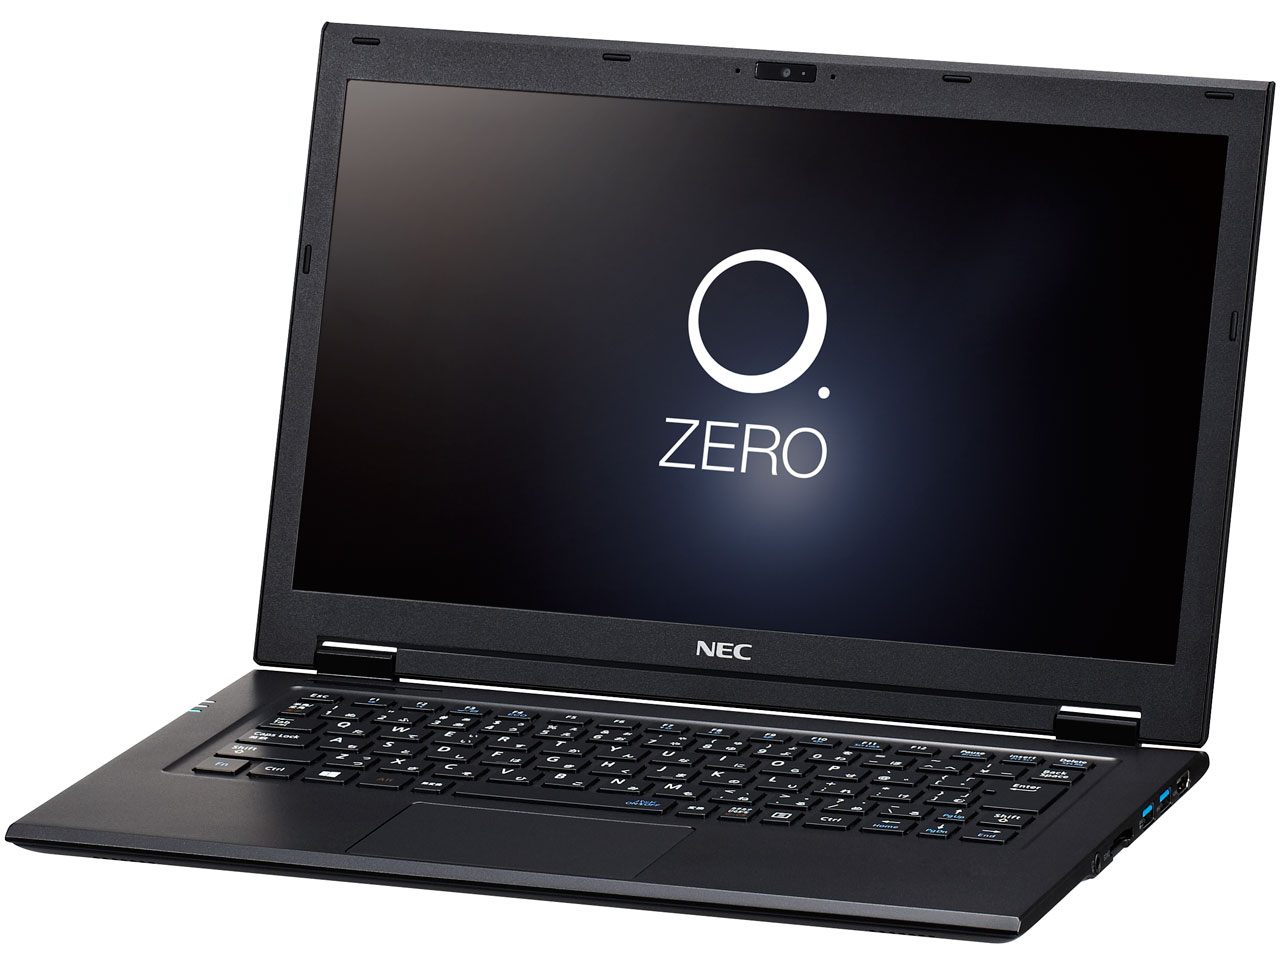 LAVIE Hybrid ZERO HZ550/BAB PC-HZ550BAB の製品画像